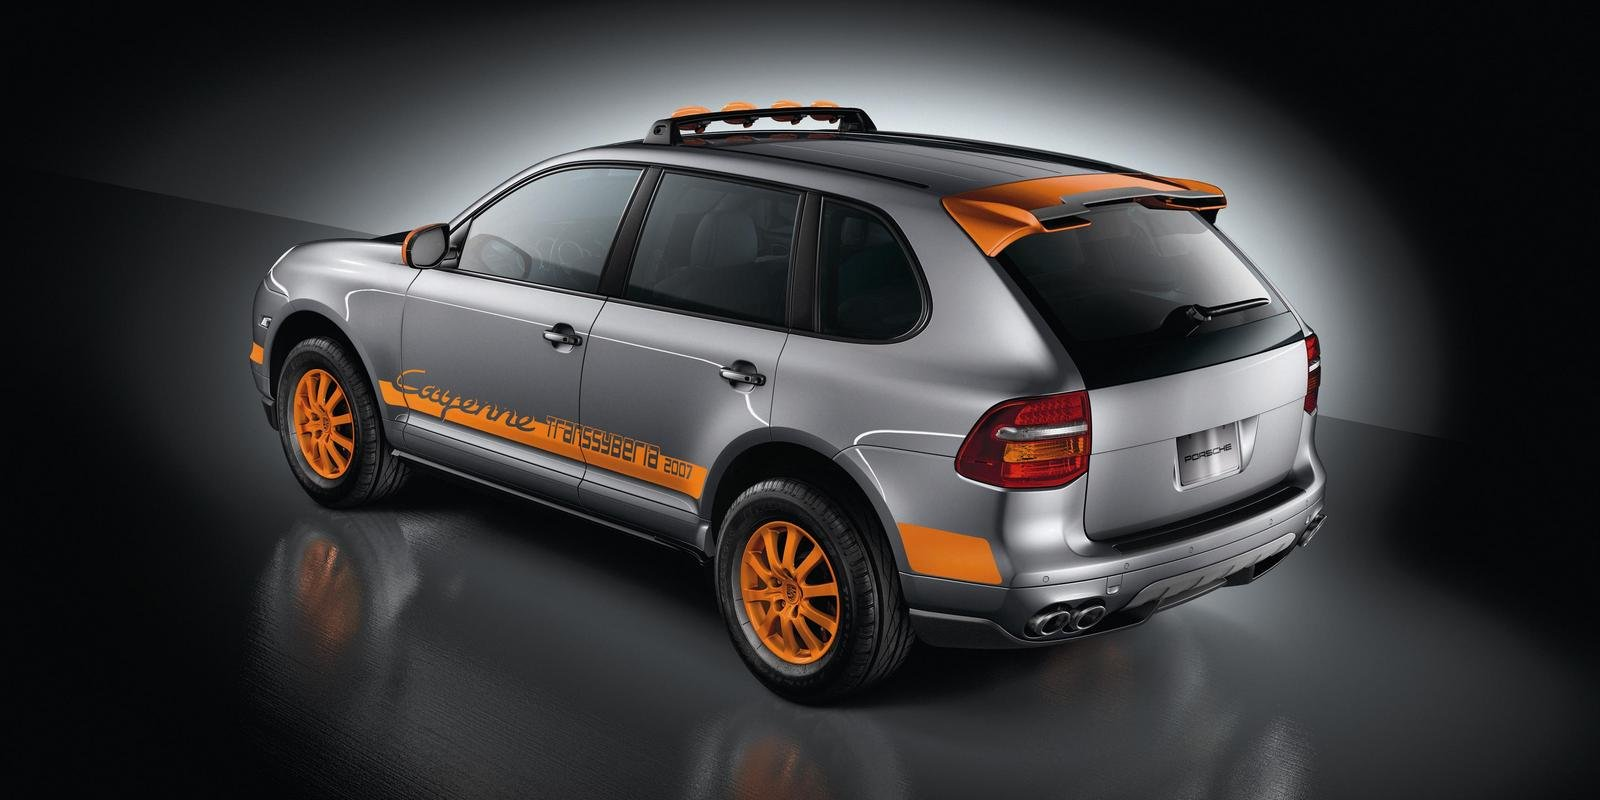 2007 porsche cayenne s transsyberia picture 161308 car review top speed. Black Bedroom Furniture Sets. Home Design Ideas